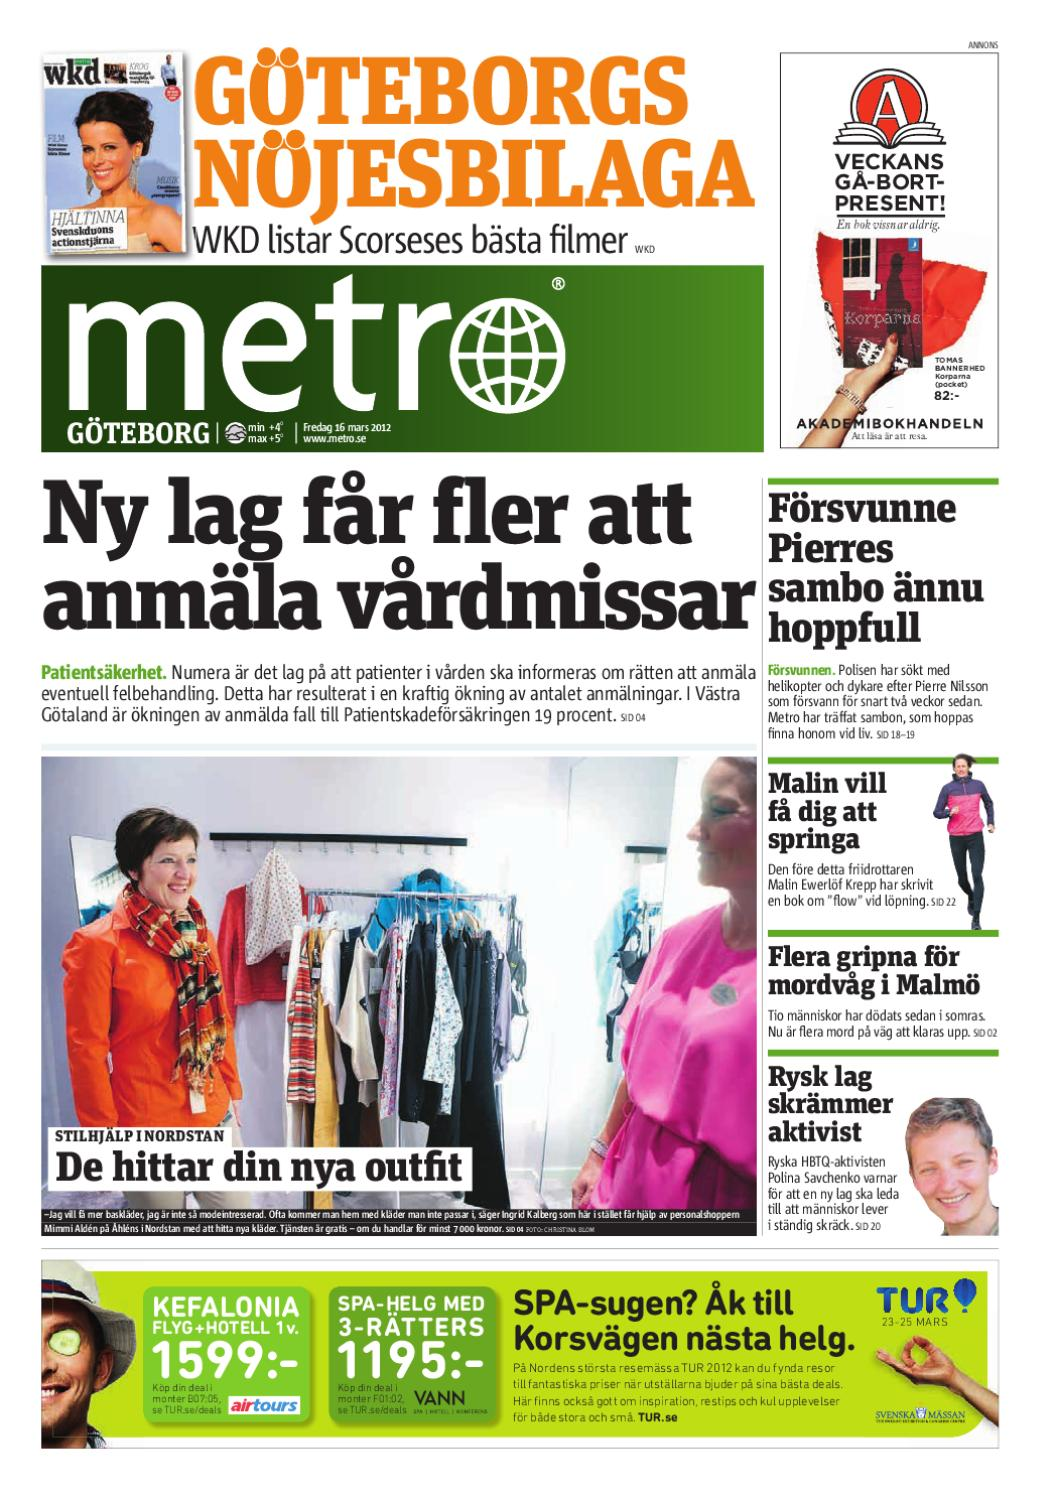 20120316 se goteborg by Metro Sweden - issuu 4597ddfb0608e